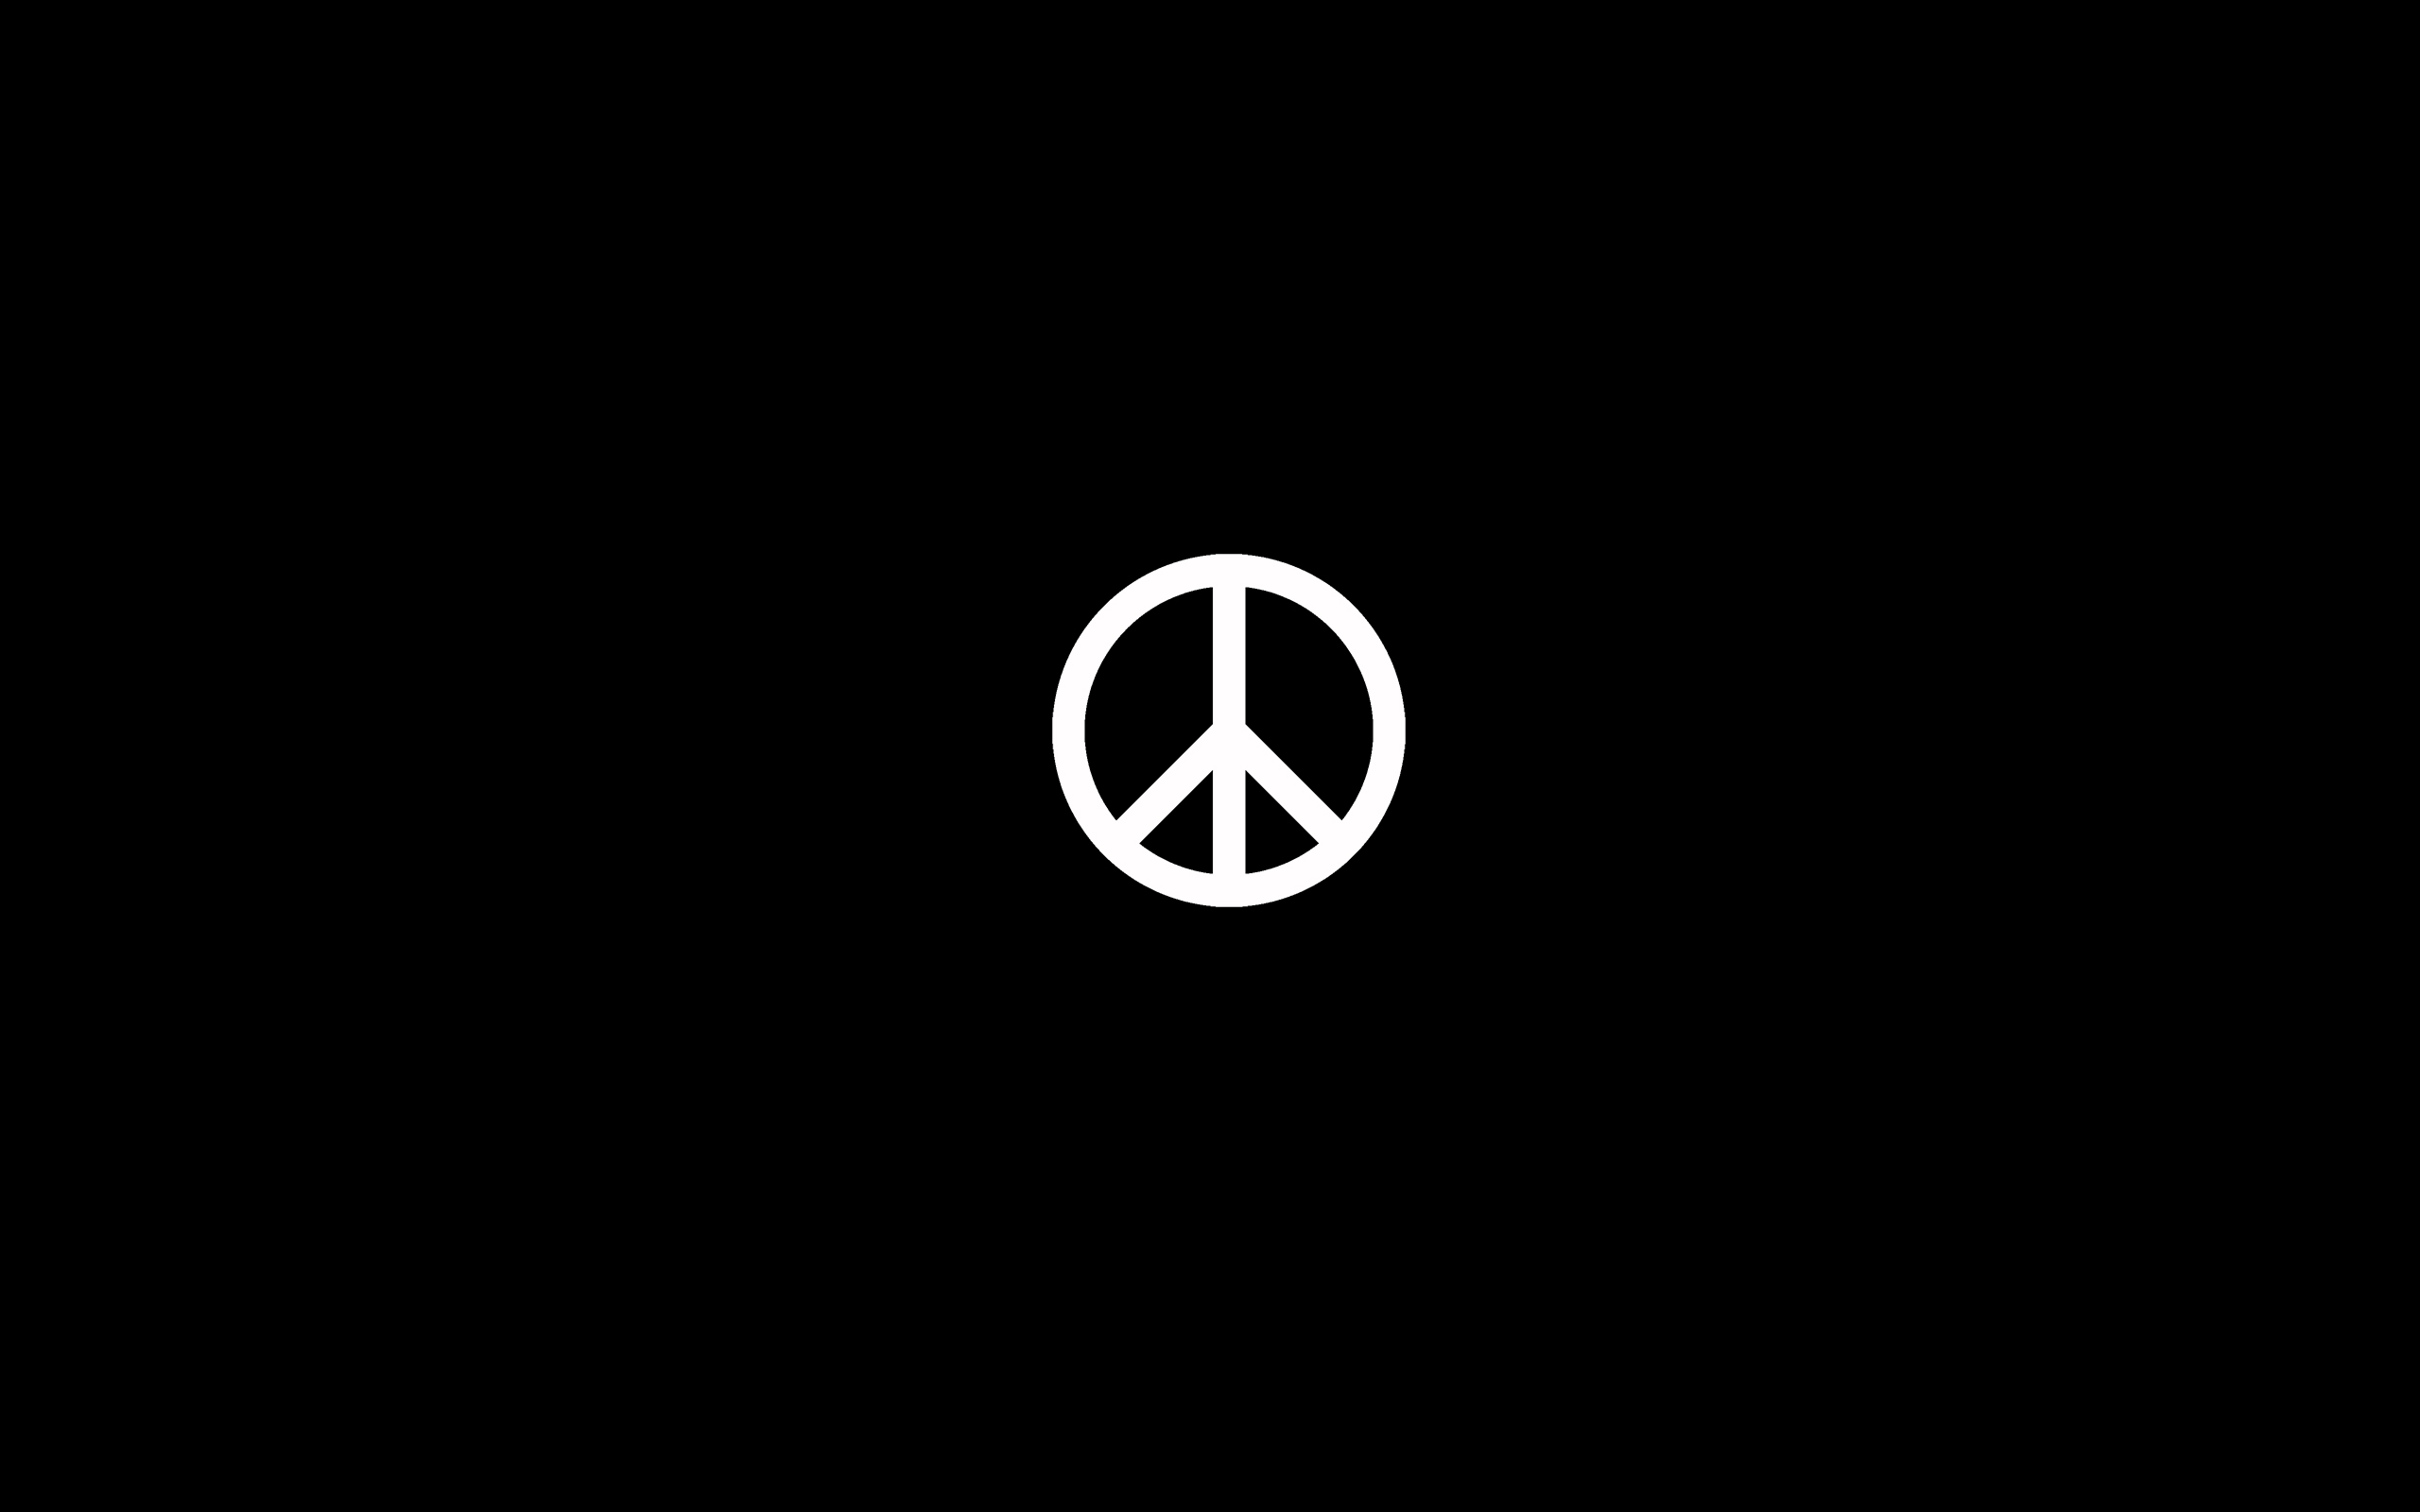 Download Peace Symbol Wallpaper Px